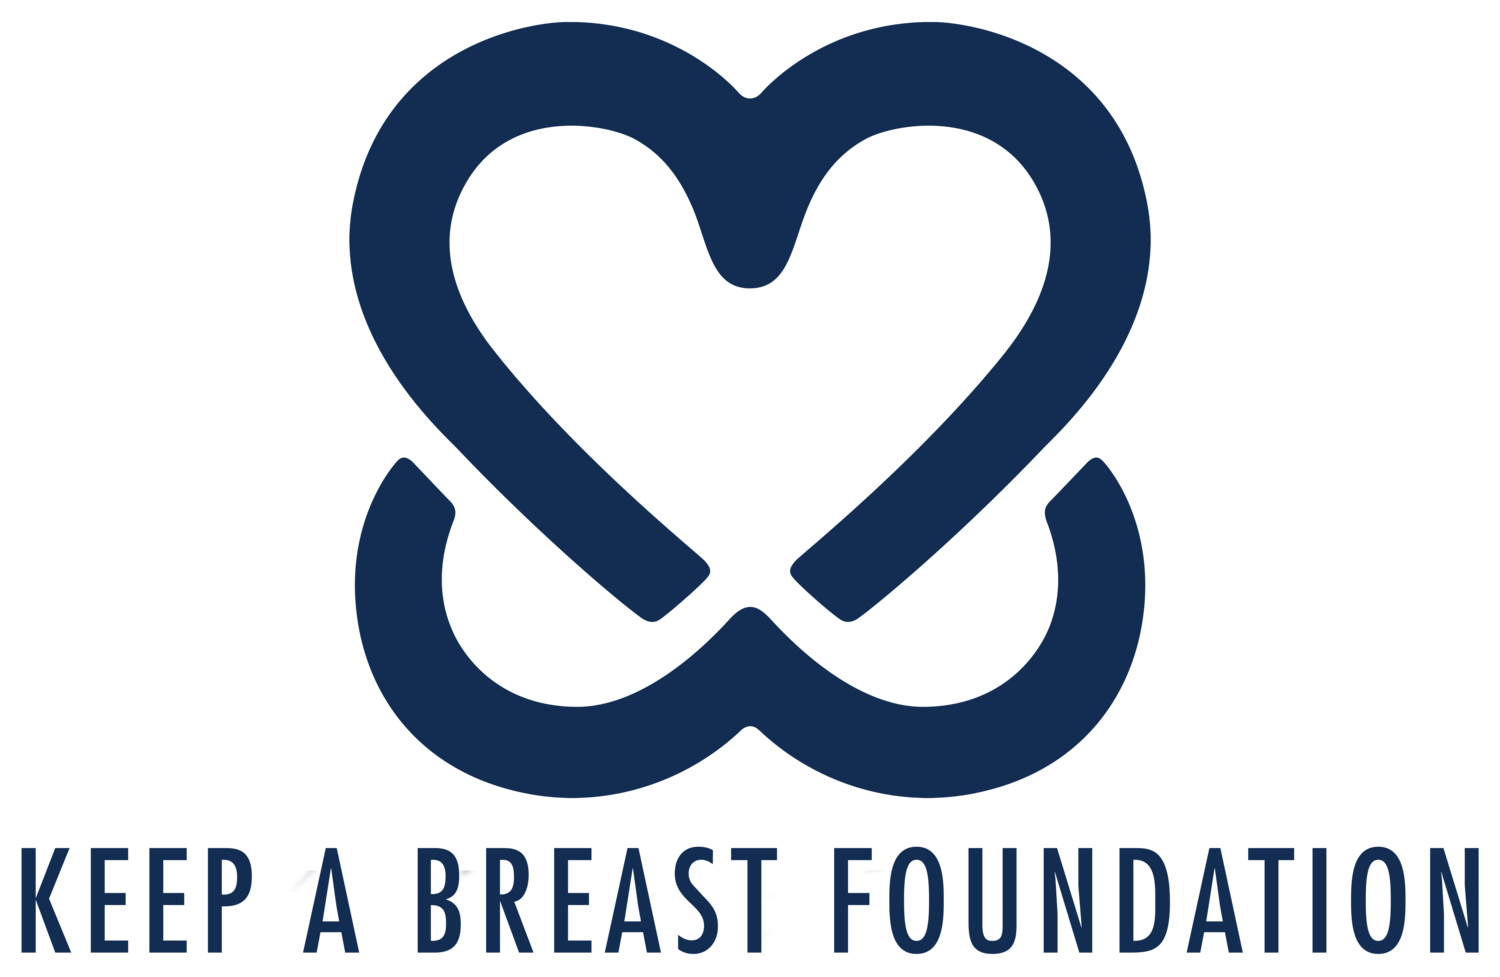 Keep A Breast Foundation